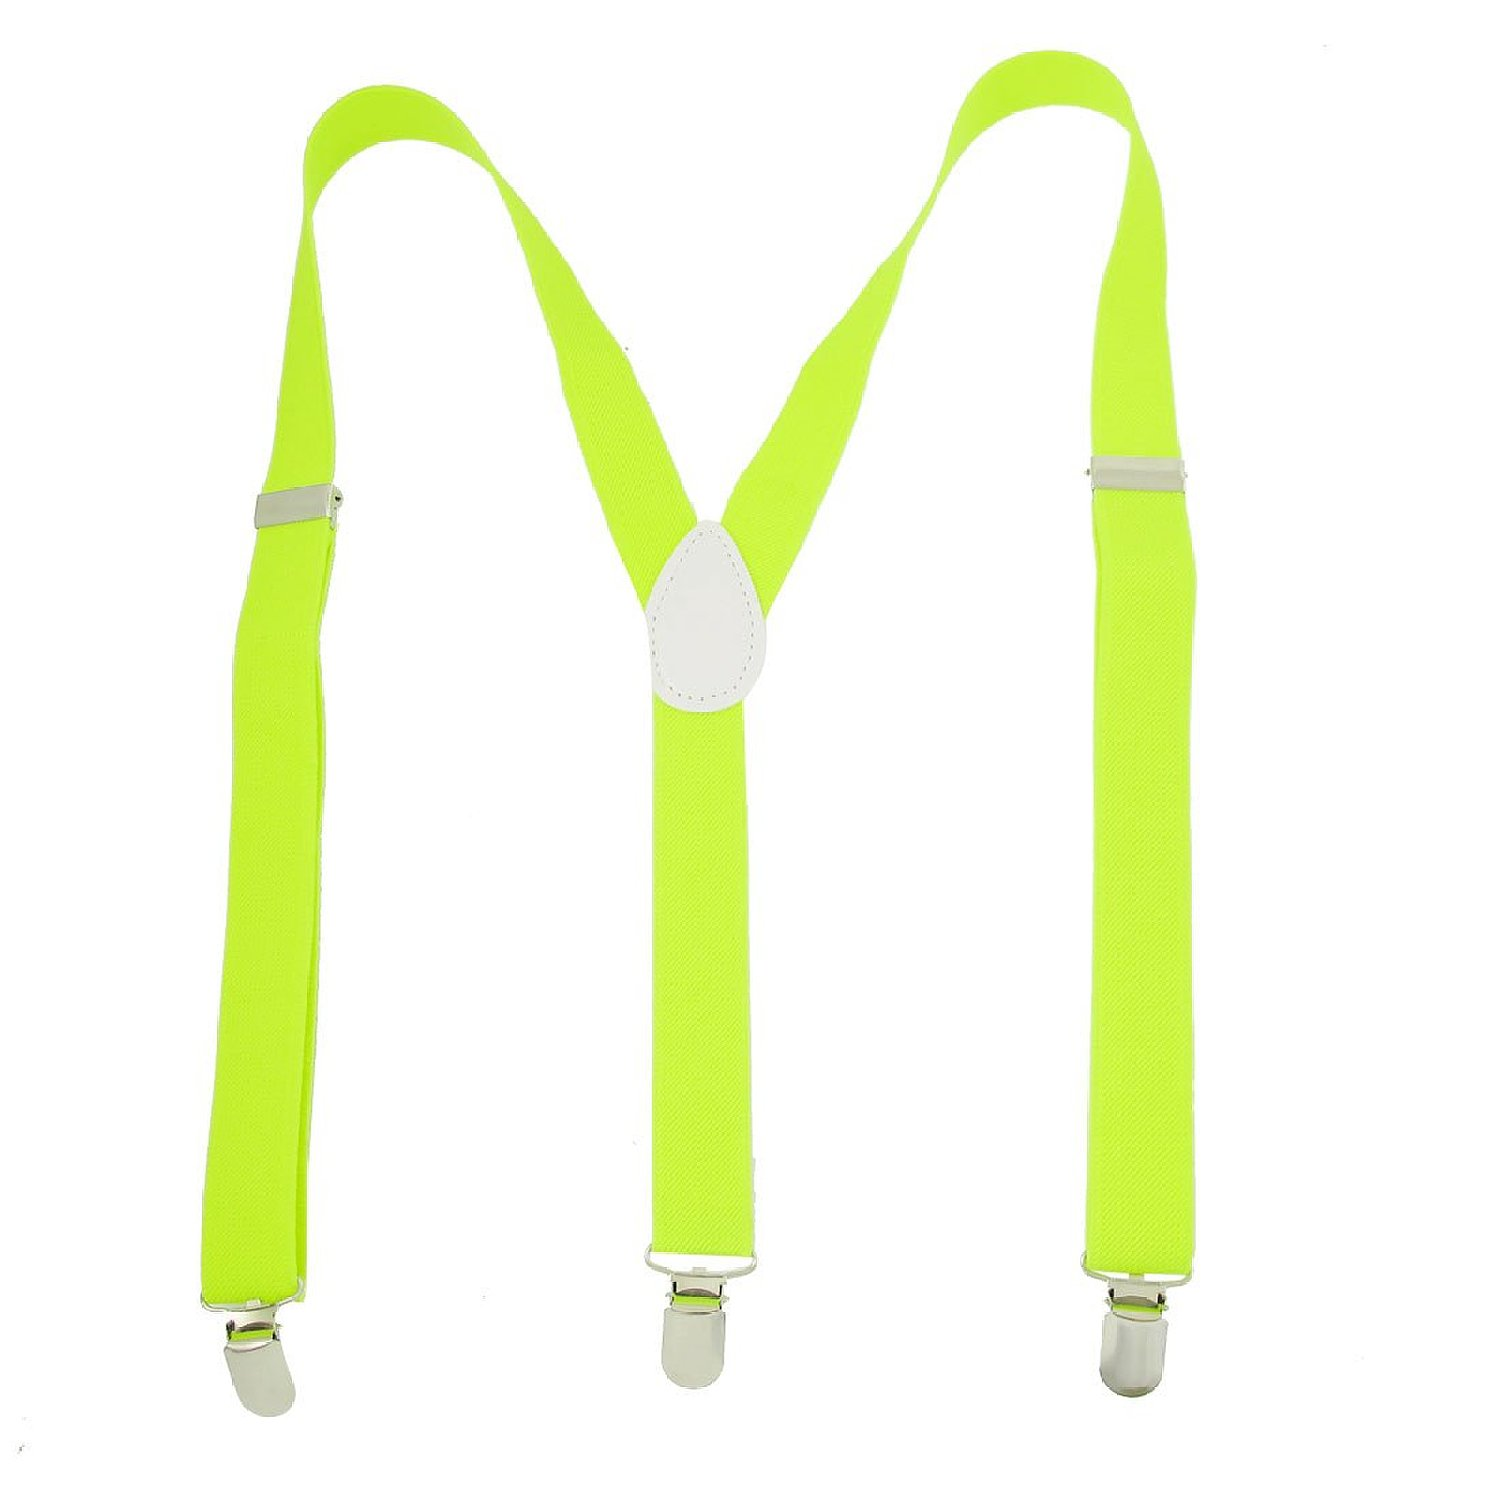 Adjustable Braces Elastic Y Back Suspender Yellow Green for Ladies